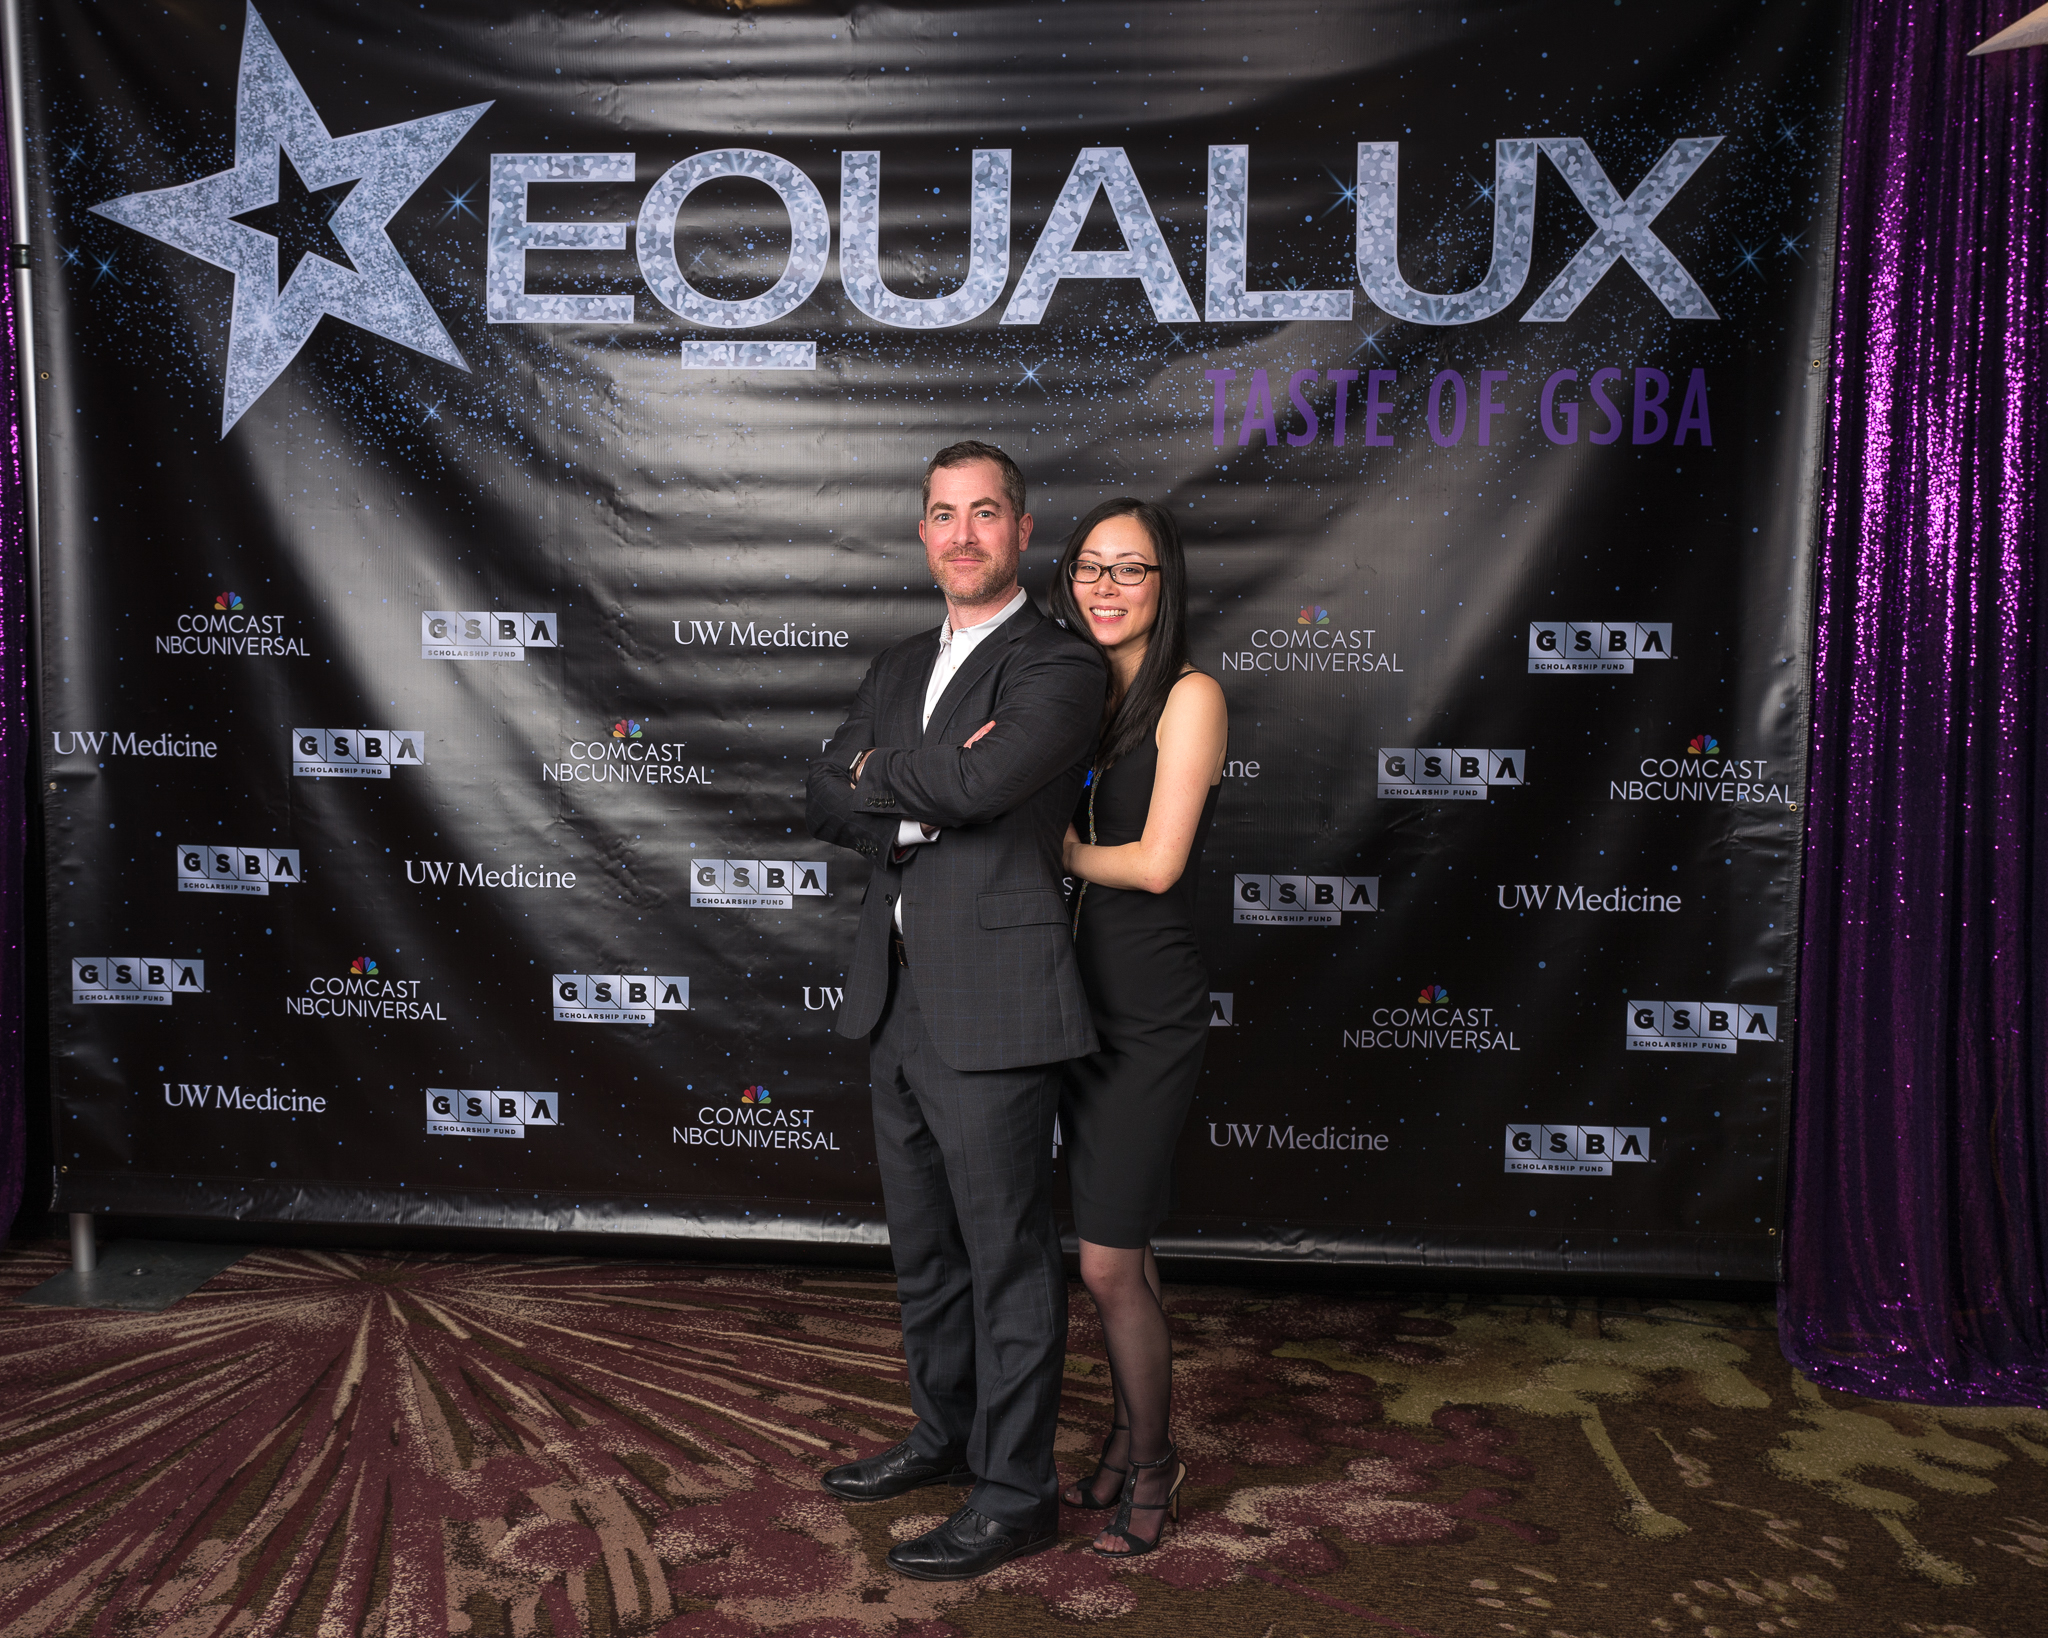 111718_GSBA EQUALUX at The Westin Seattle (Credit- Nate Gowdy)-163.jpg